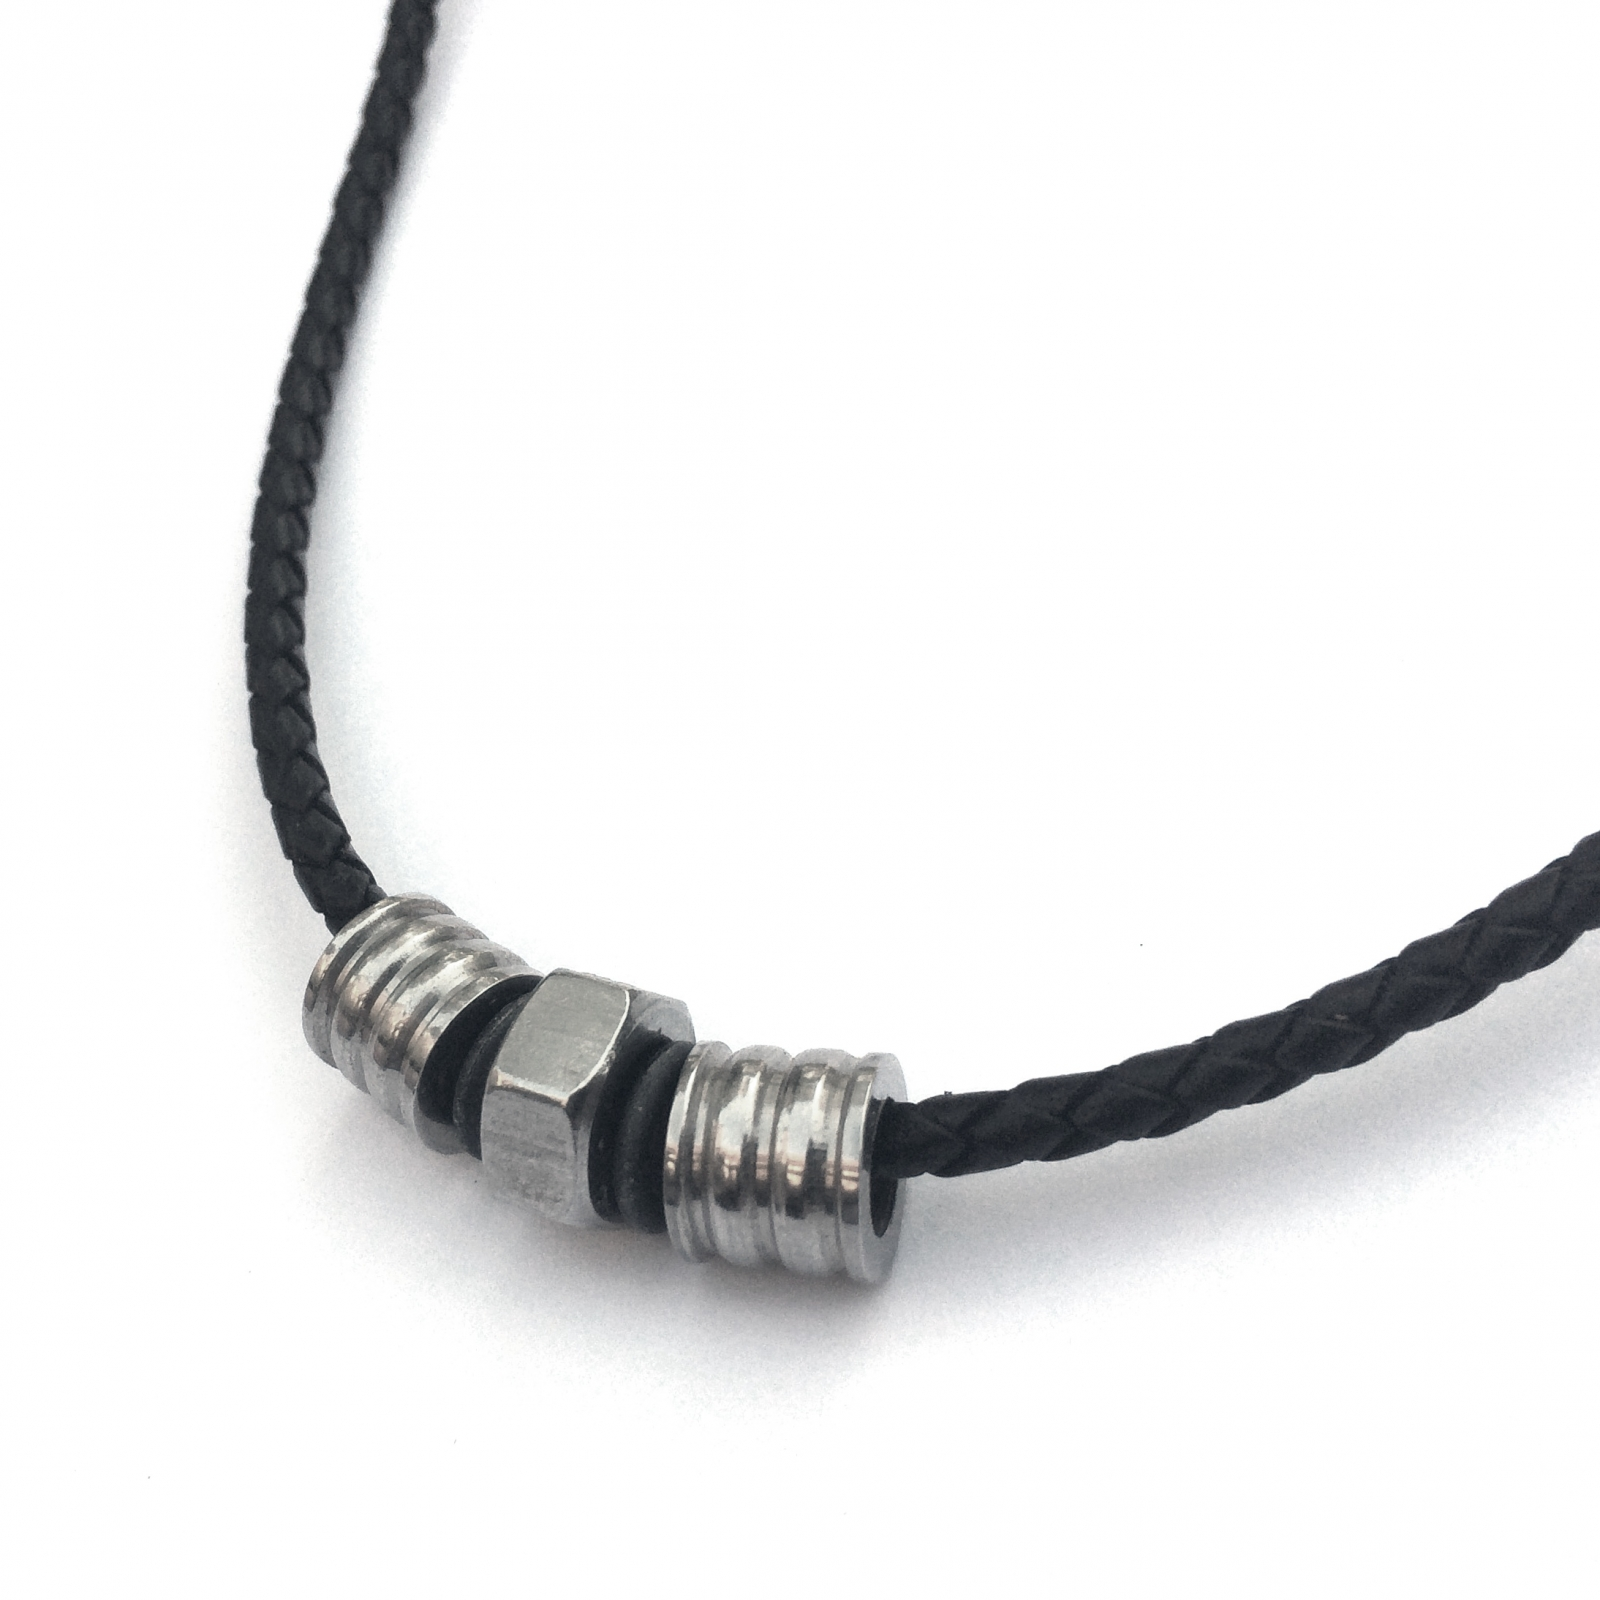 About Men's Leather Jewelry We hope you enjoy exploring our men's leather jewelry collection. Artisans throughout the globe handcraft these unique men's leather bracelets and necklaces.